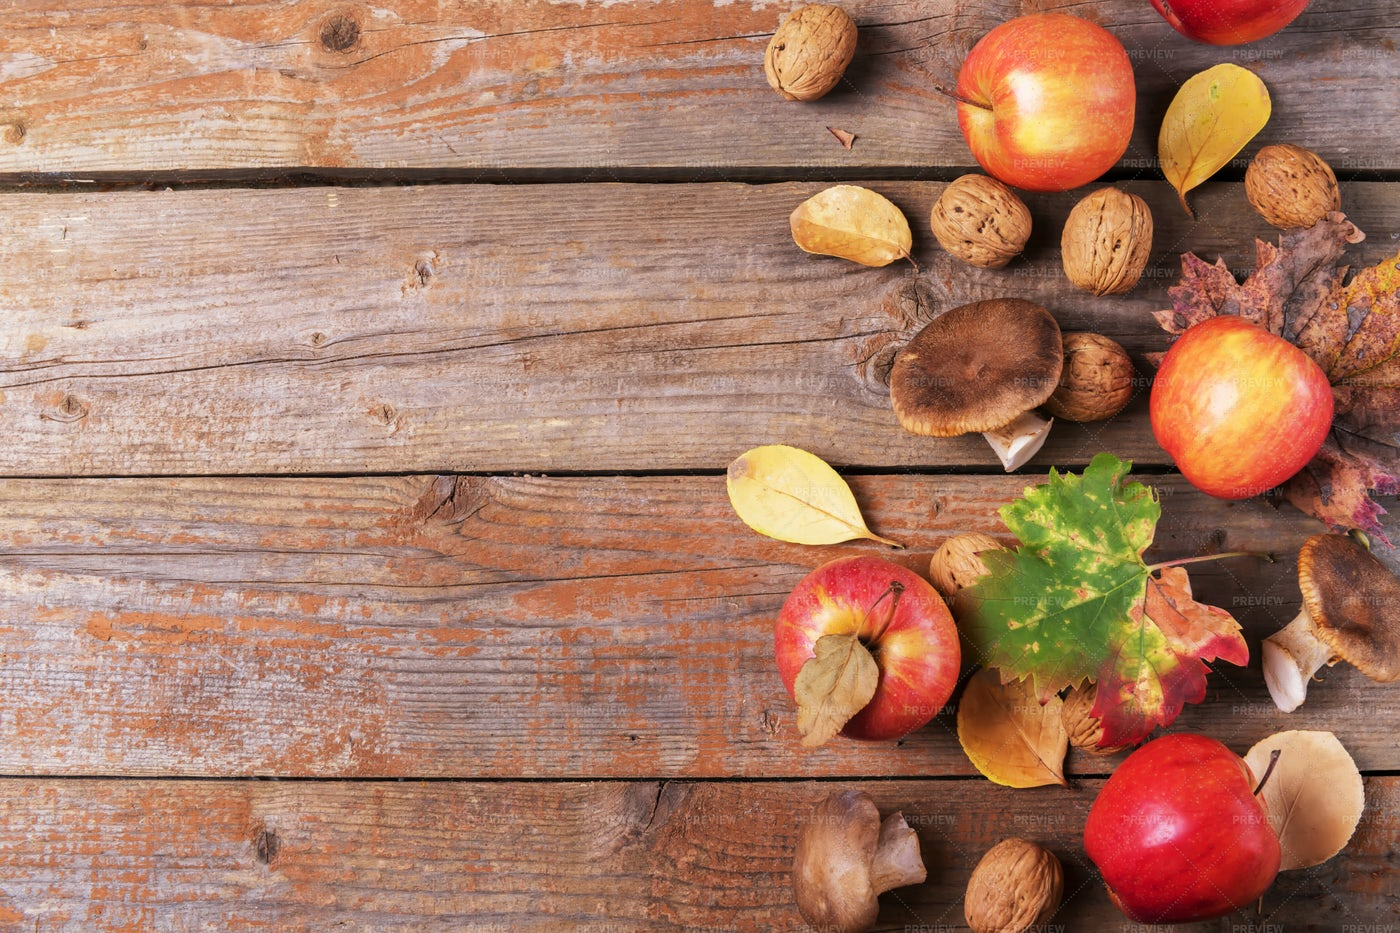 Mushrooms, Apples, Leaves And Walnuts: Stock Photos